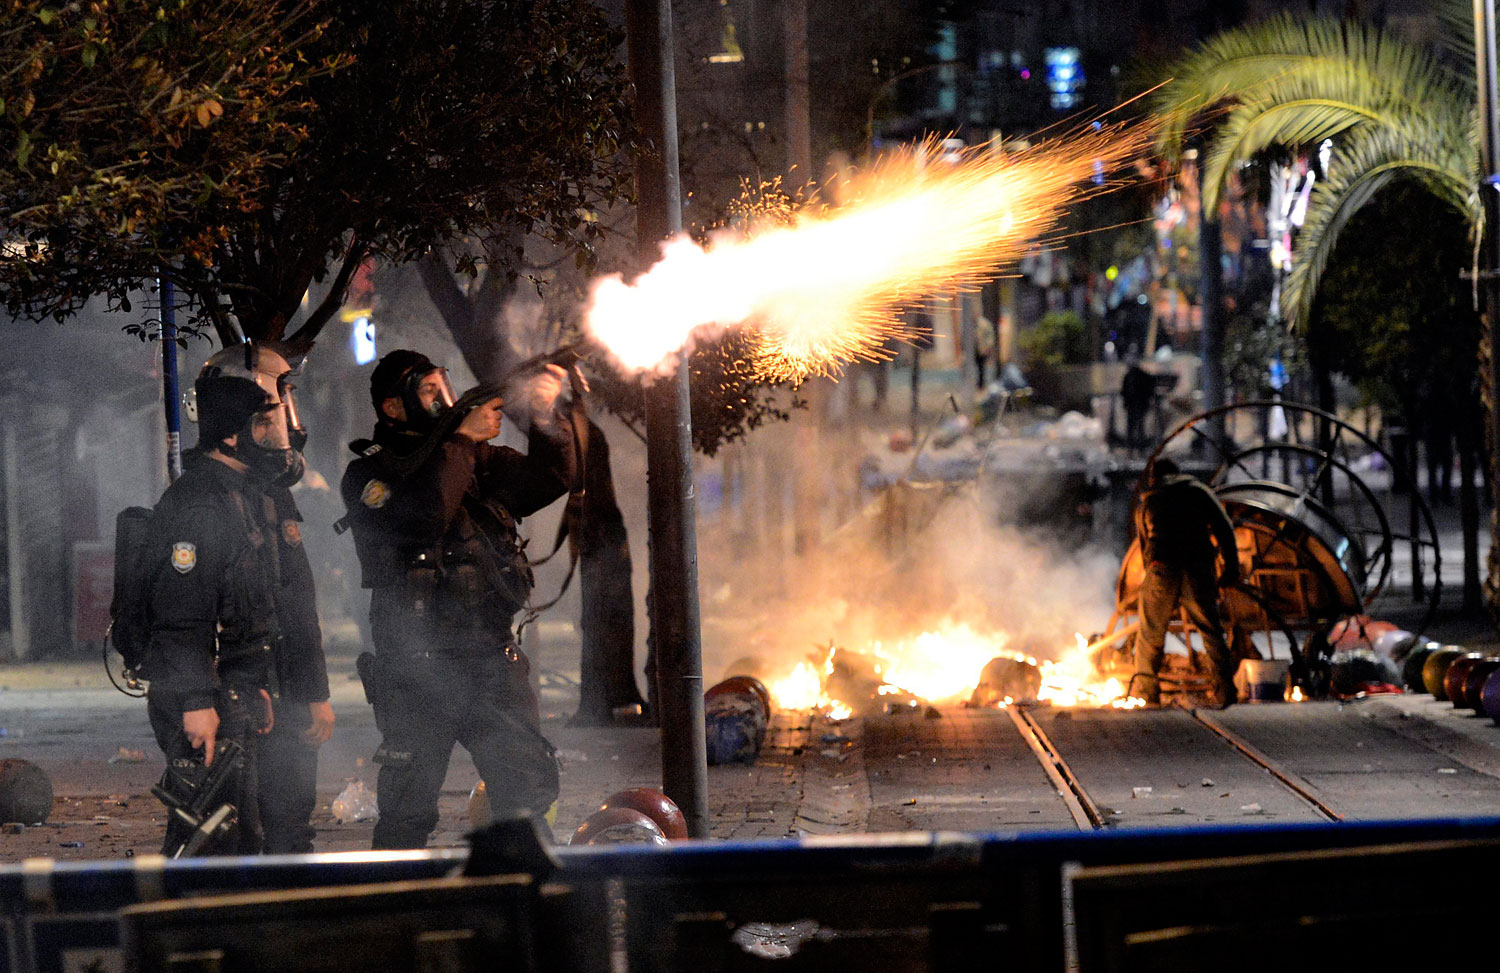 Turkish riot police fires tear gas to disperse protesters during a demonstration in Istanbul, March 11, 2014.